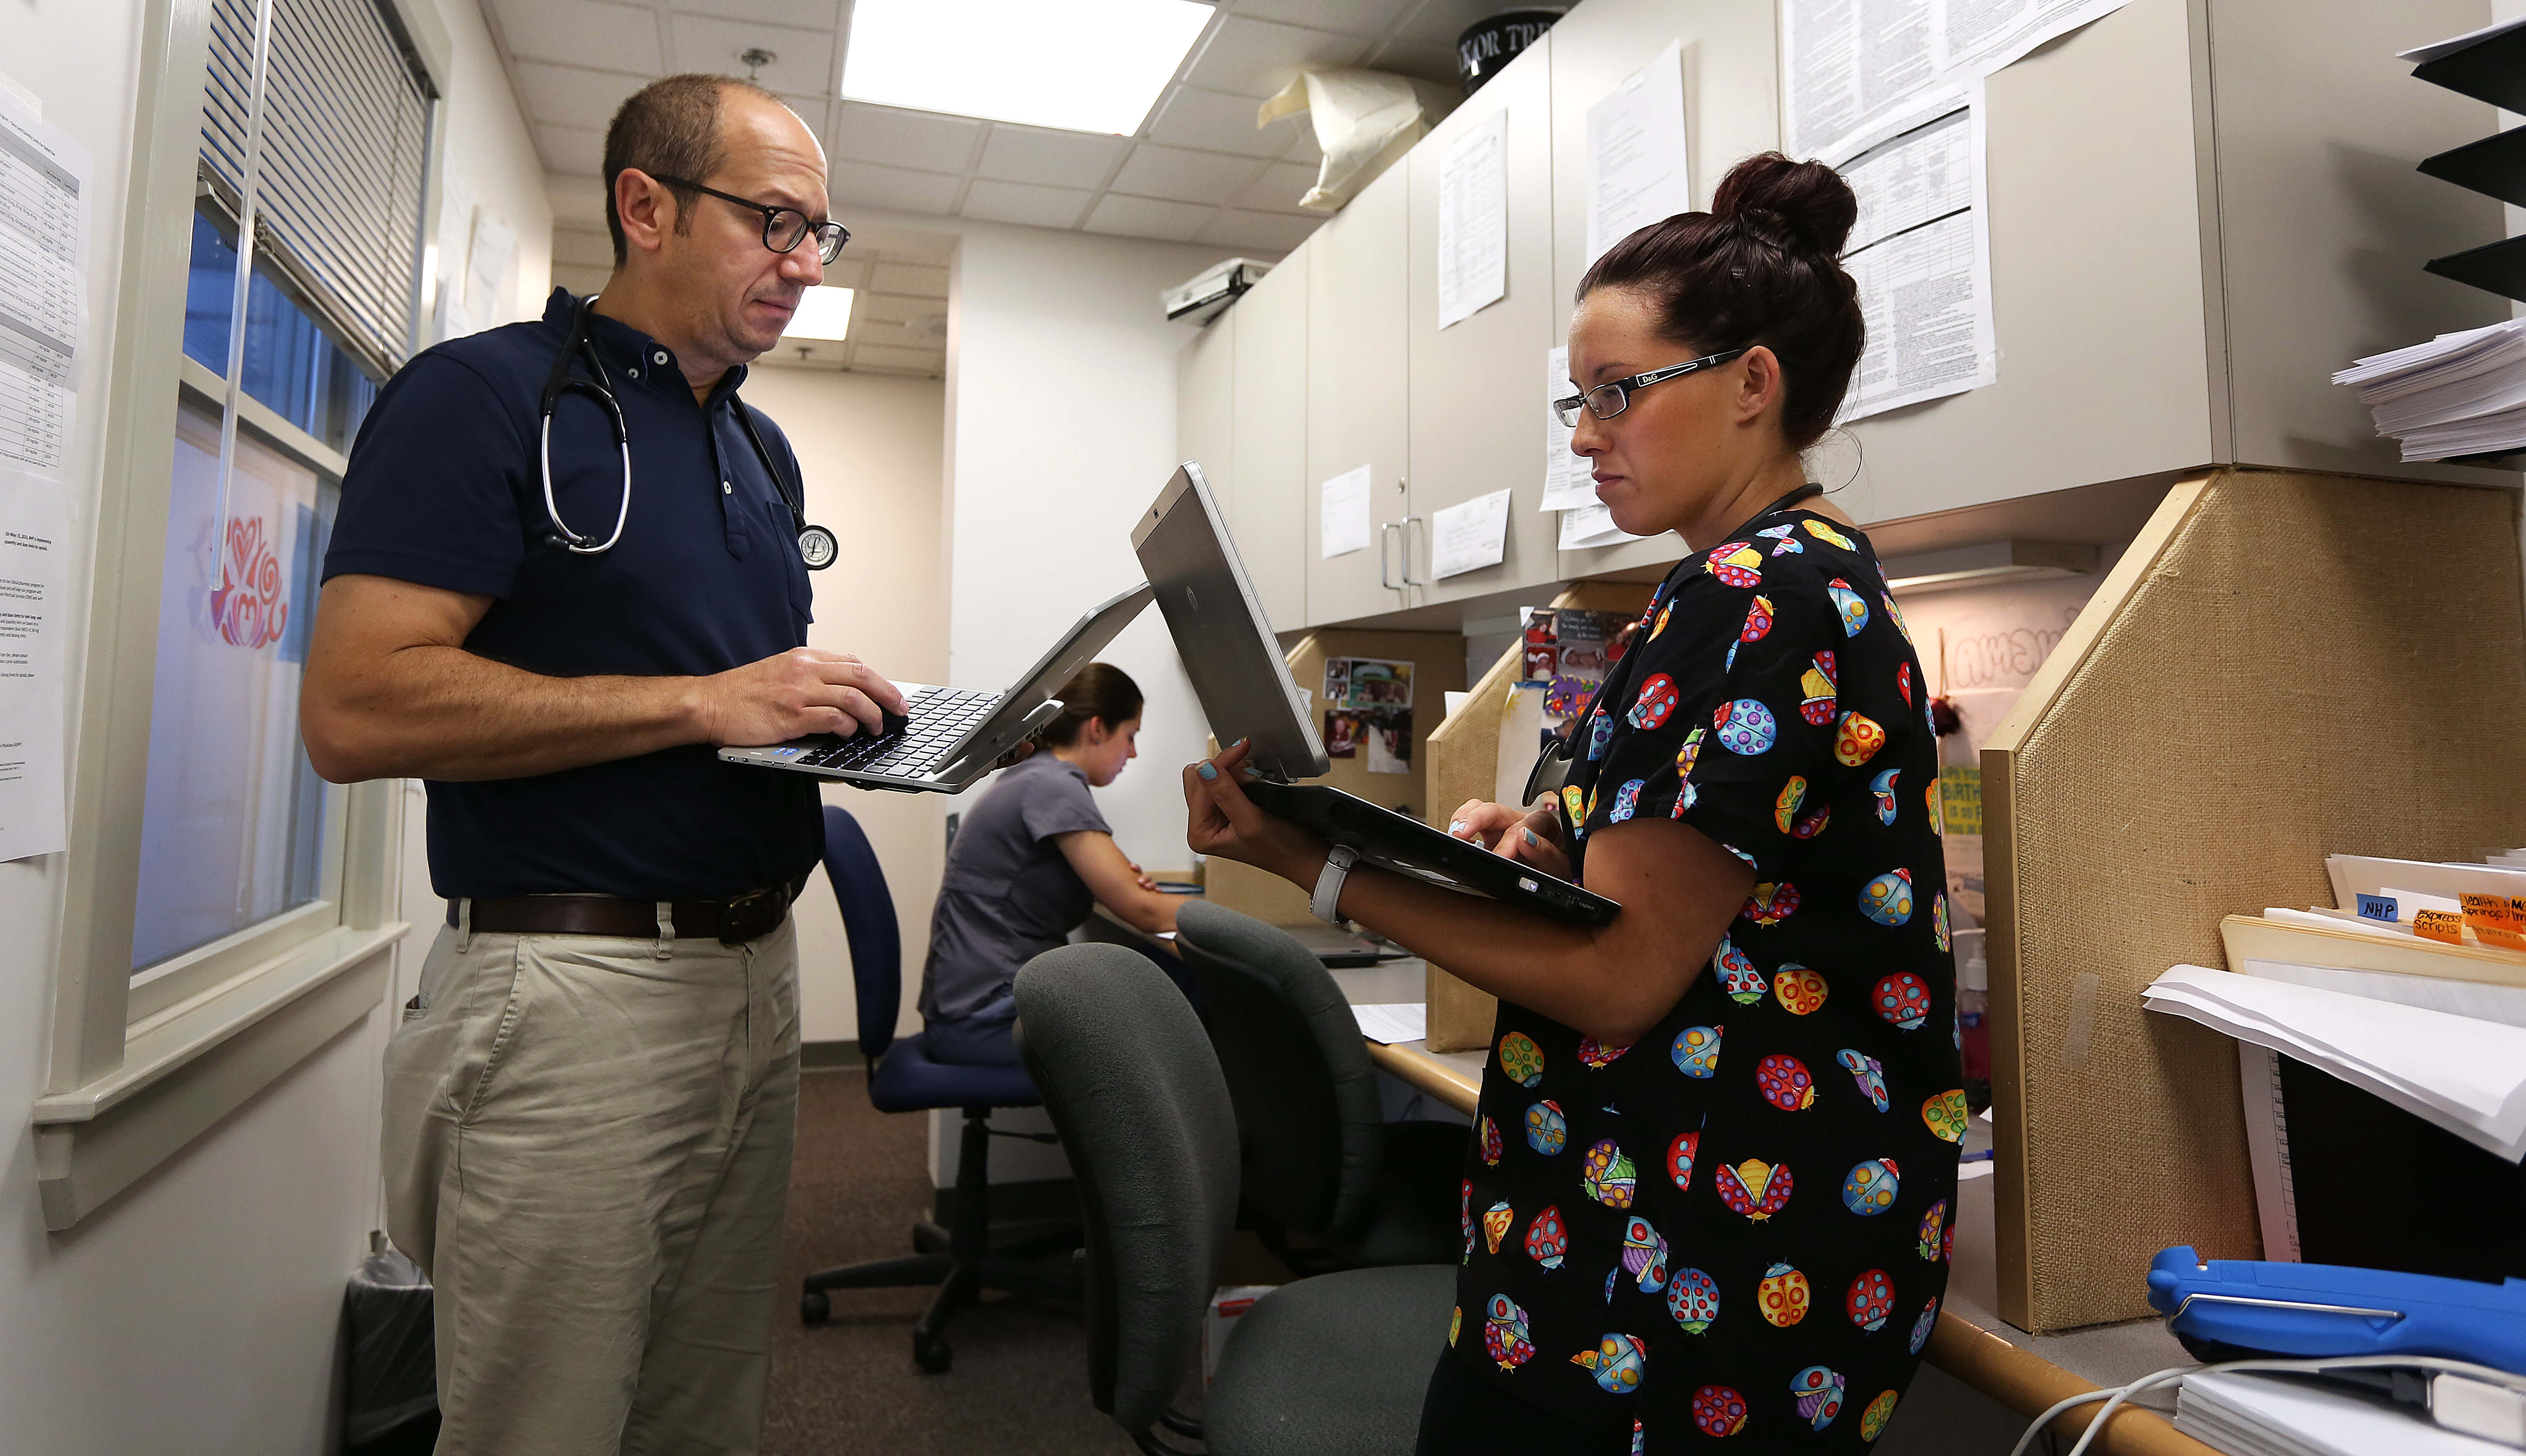 Hazards tied to medical records rush - The Boston Globe